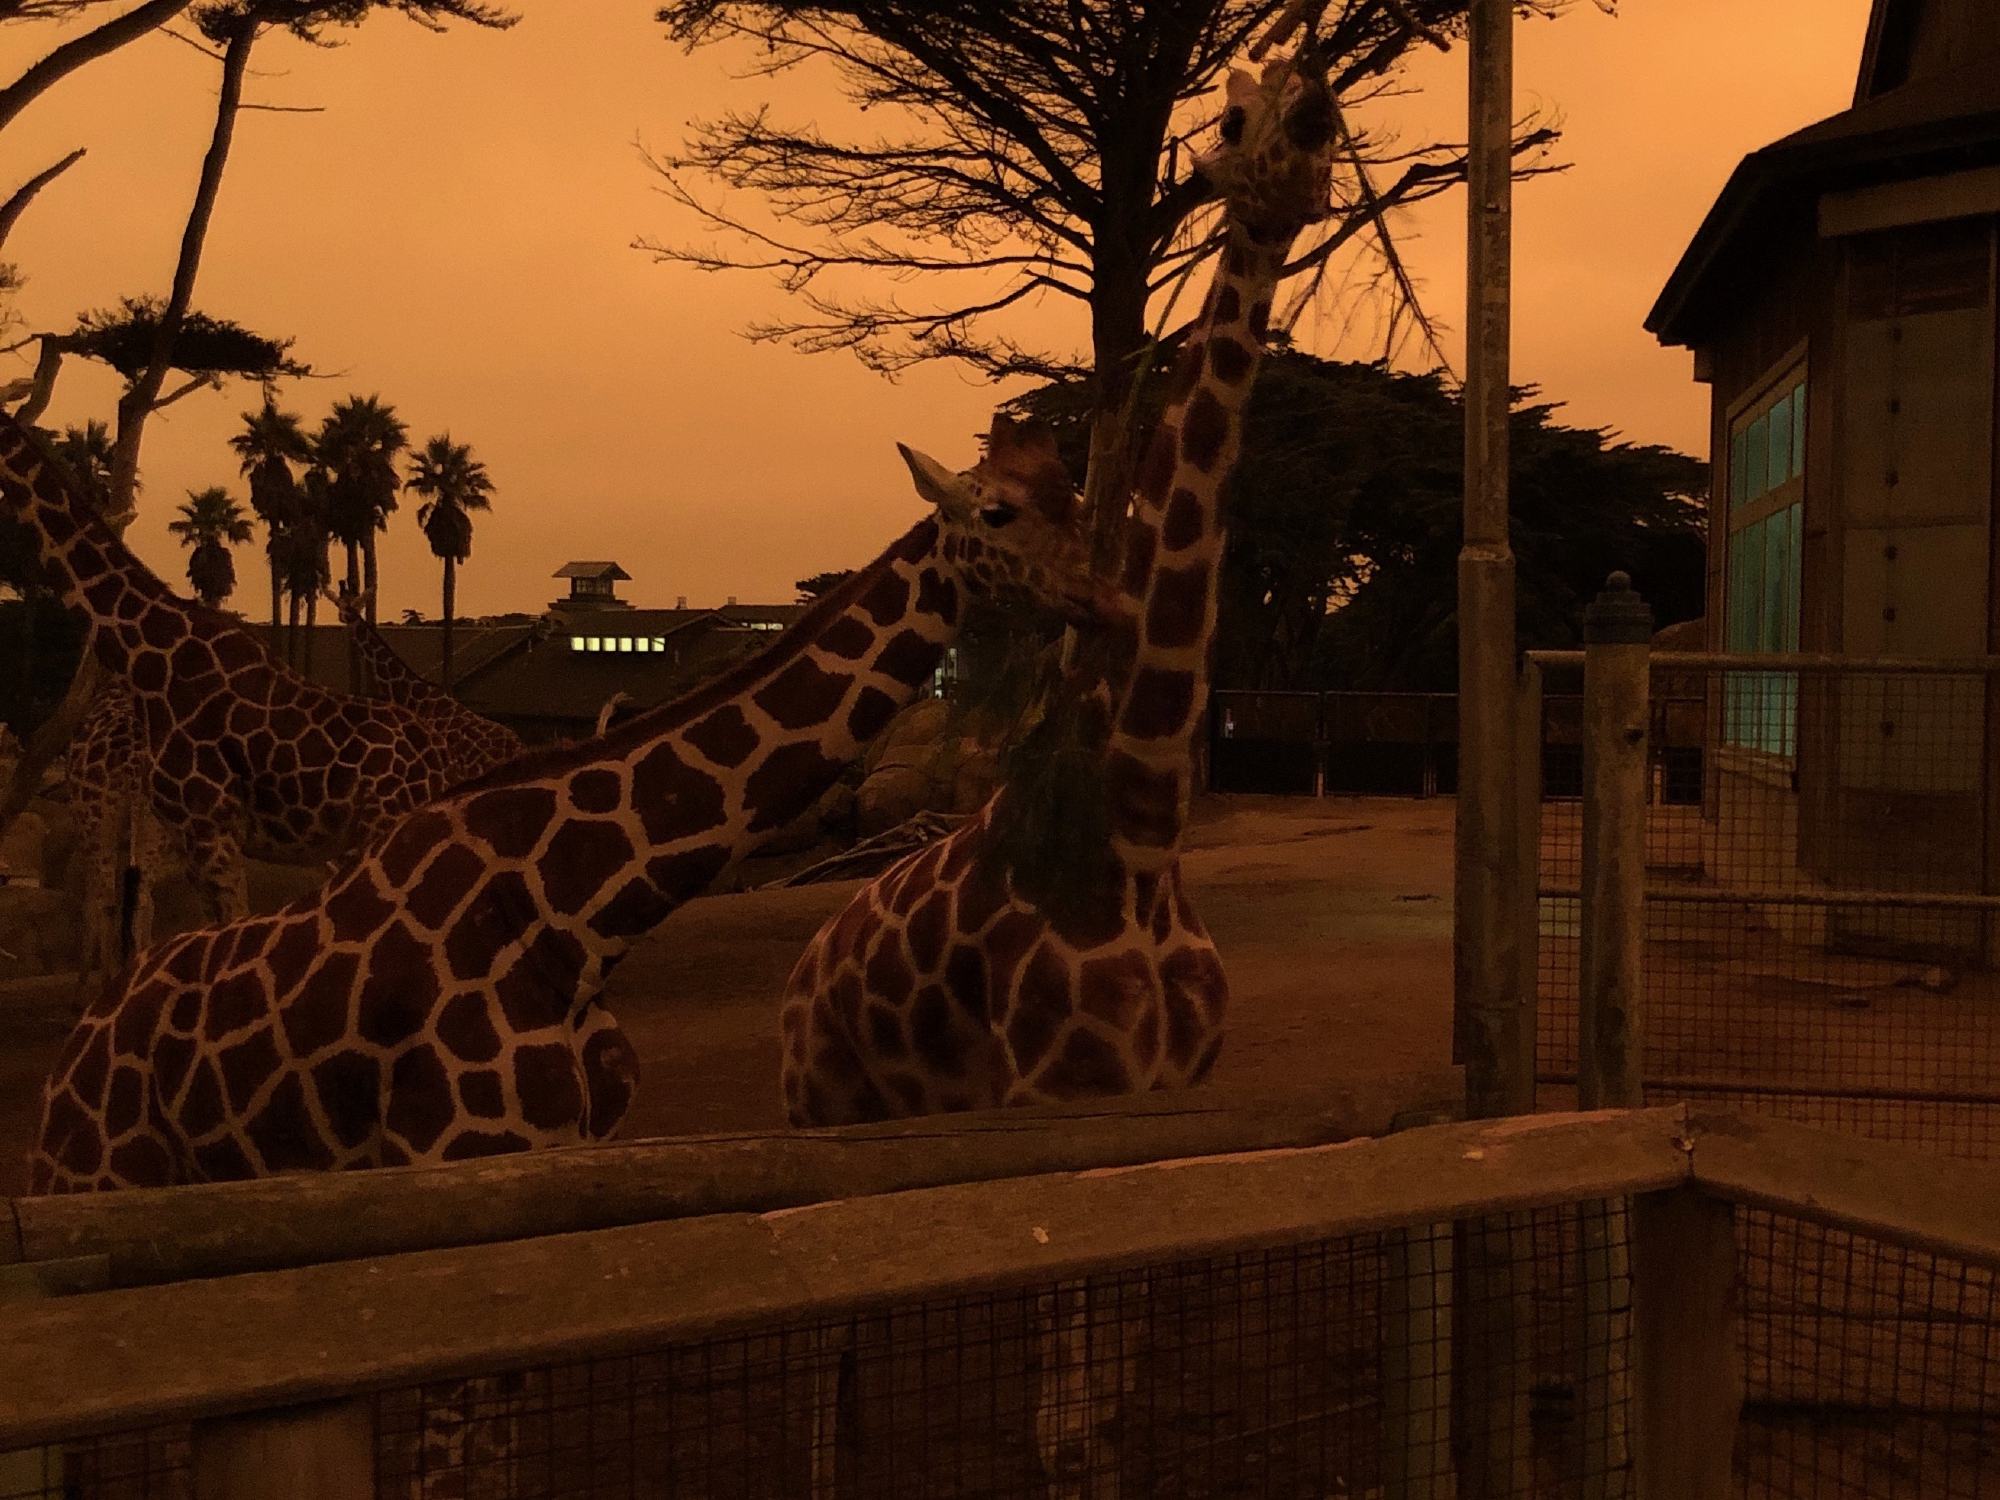 Giraffes at the San Francisco zoo under a red sky my phone couldn't capture